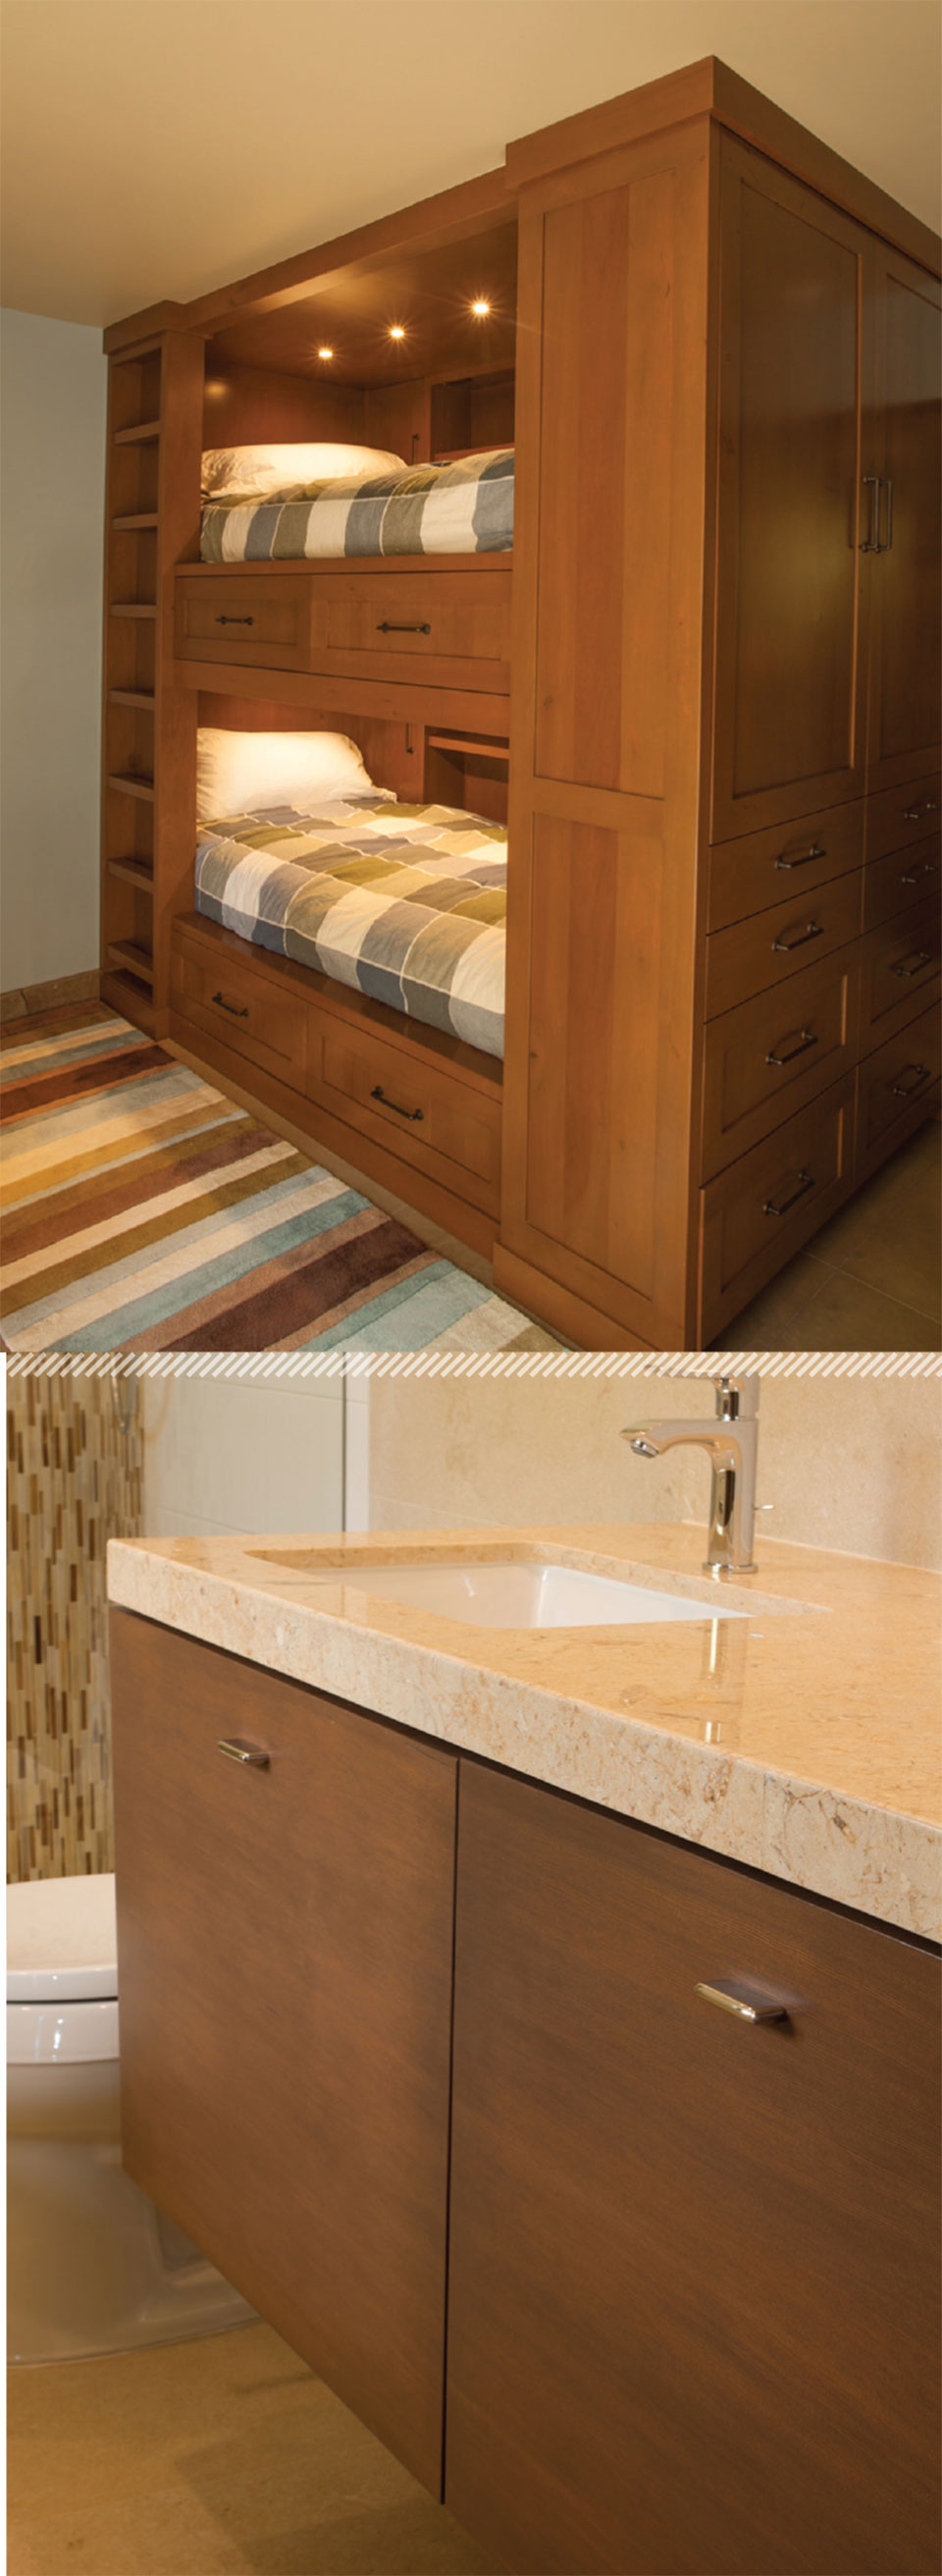 Working with Wood in the Modern West- Sun Valley Bunk Beds and Sink